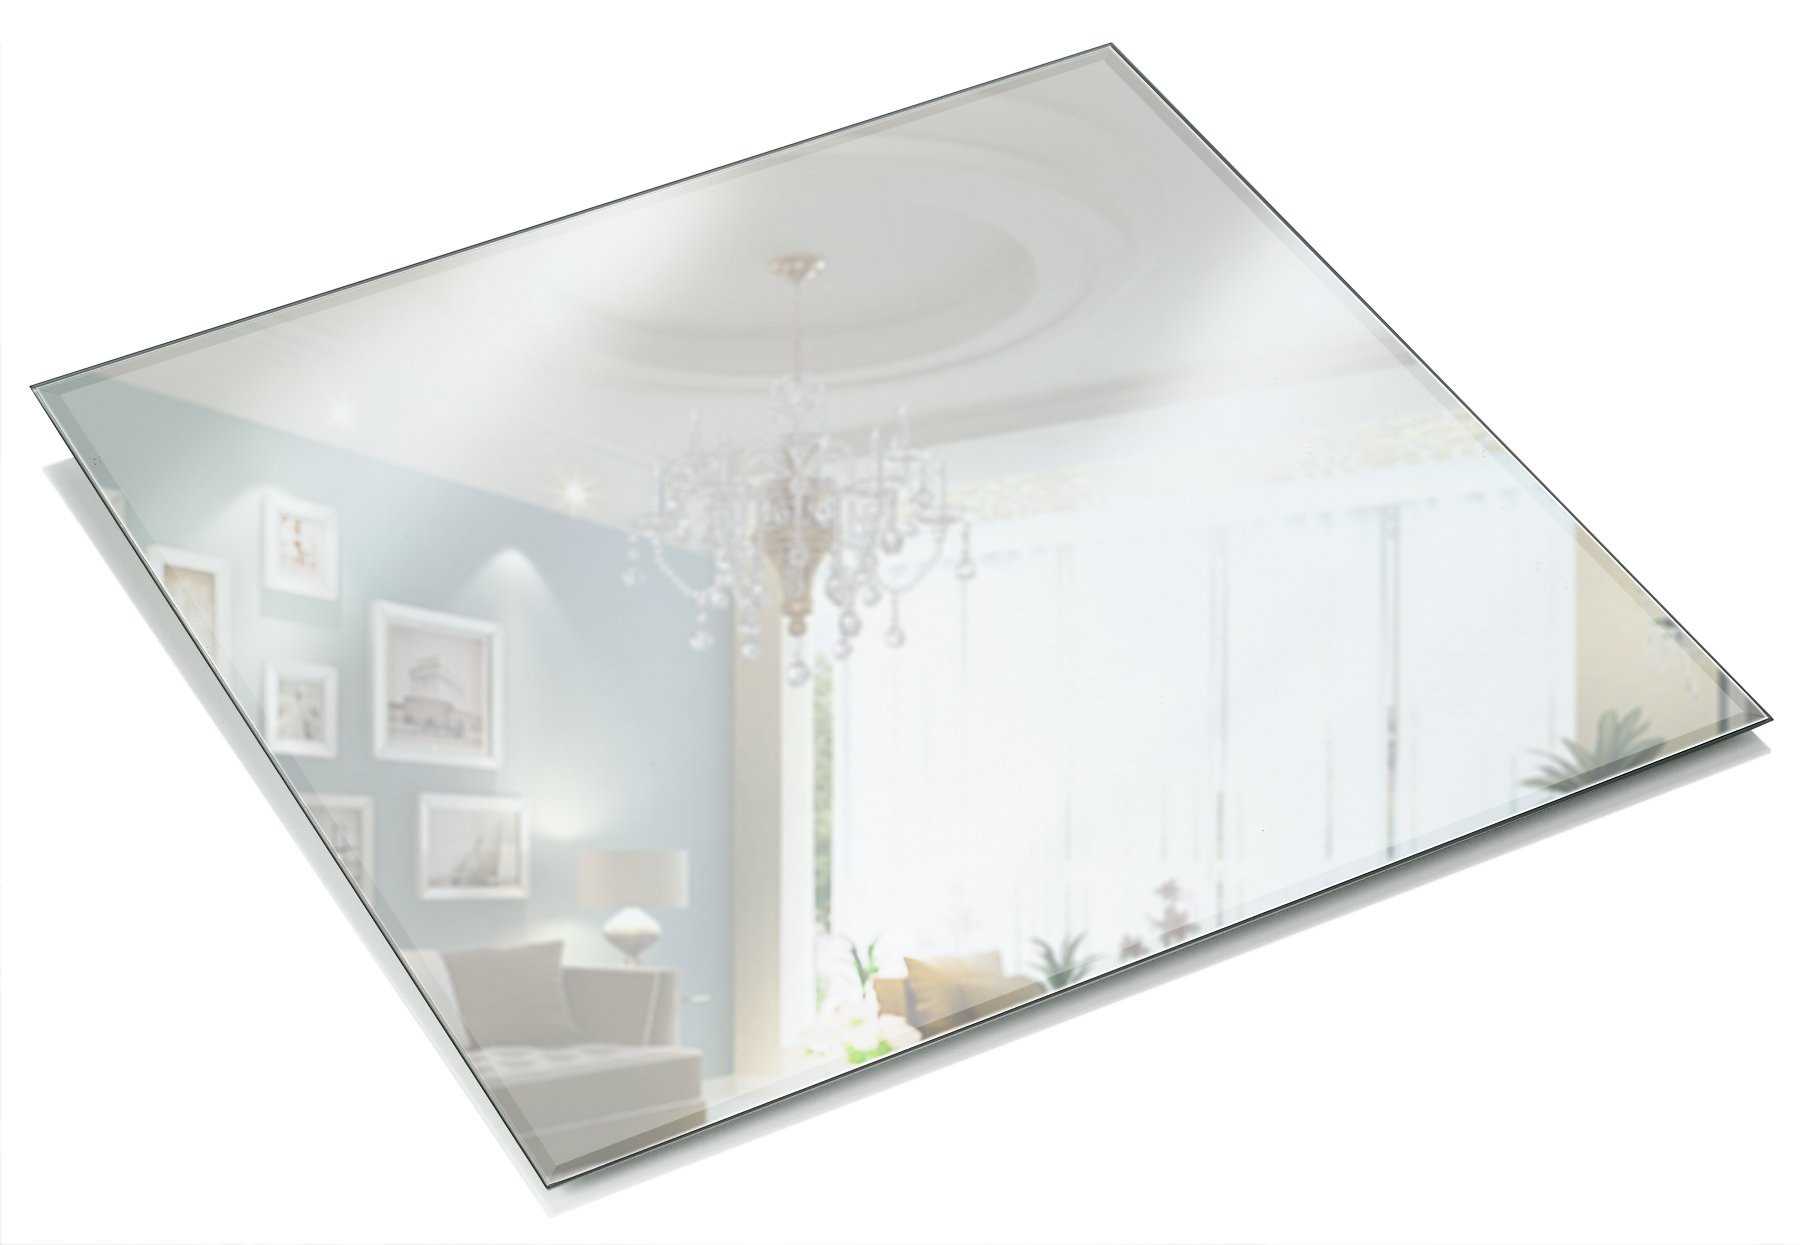 Cheap Bevelled Edge Mirror Tiles Find Bevelled Edge Mirror Tiles